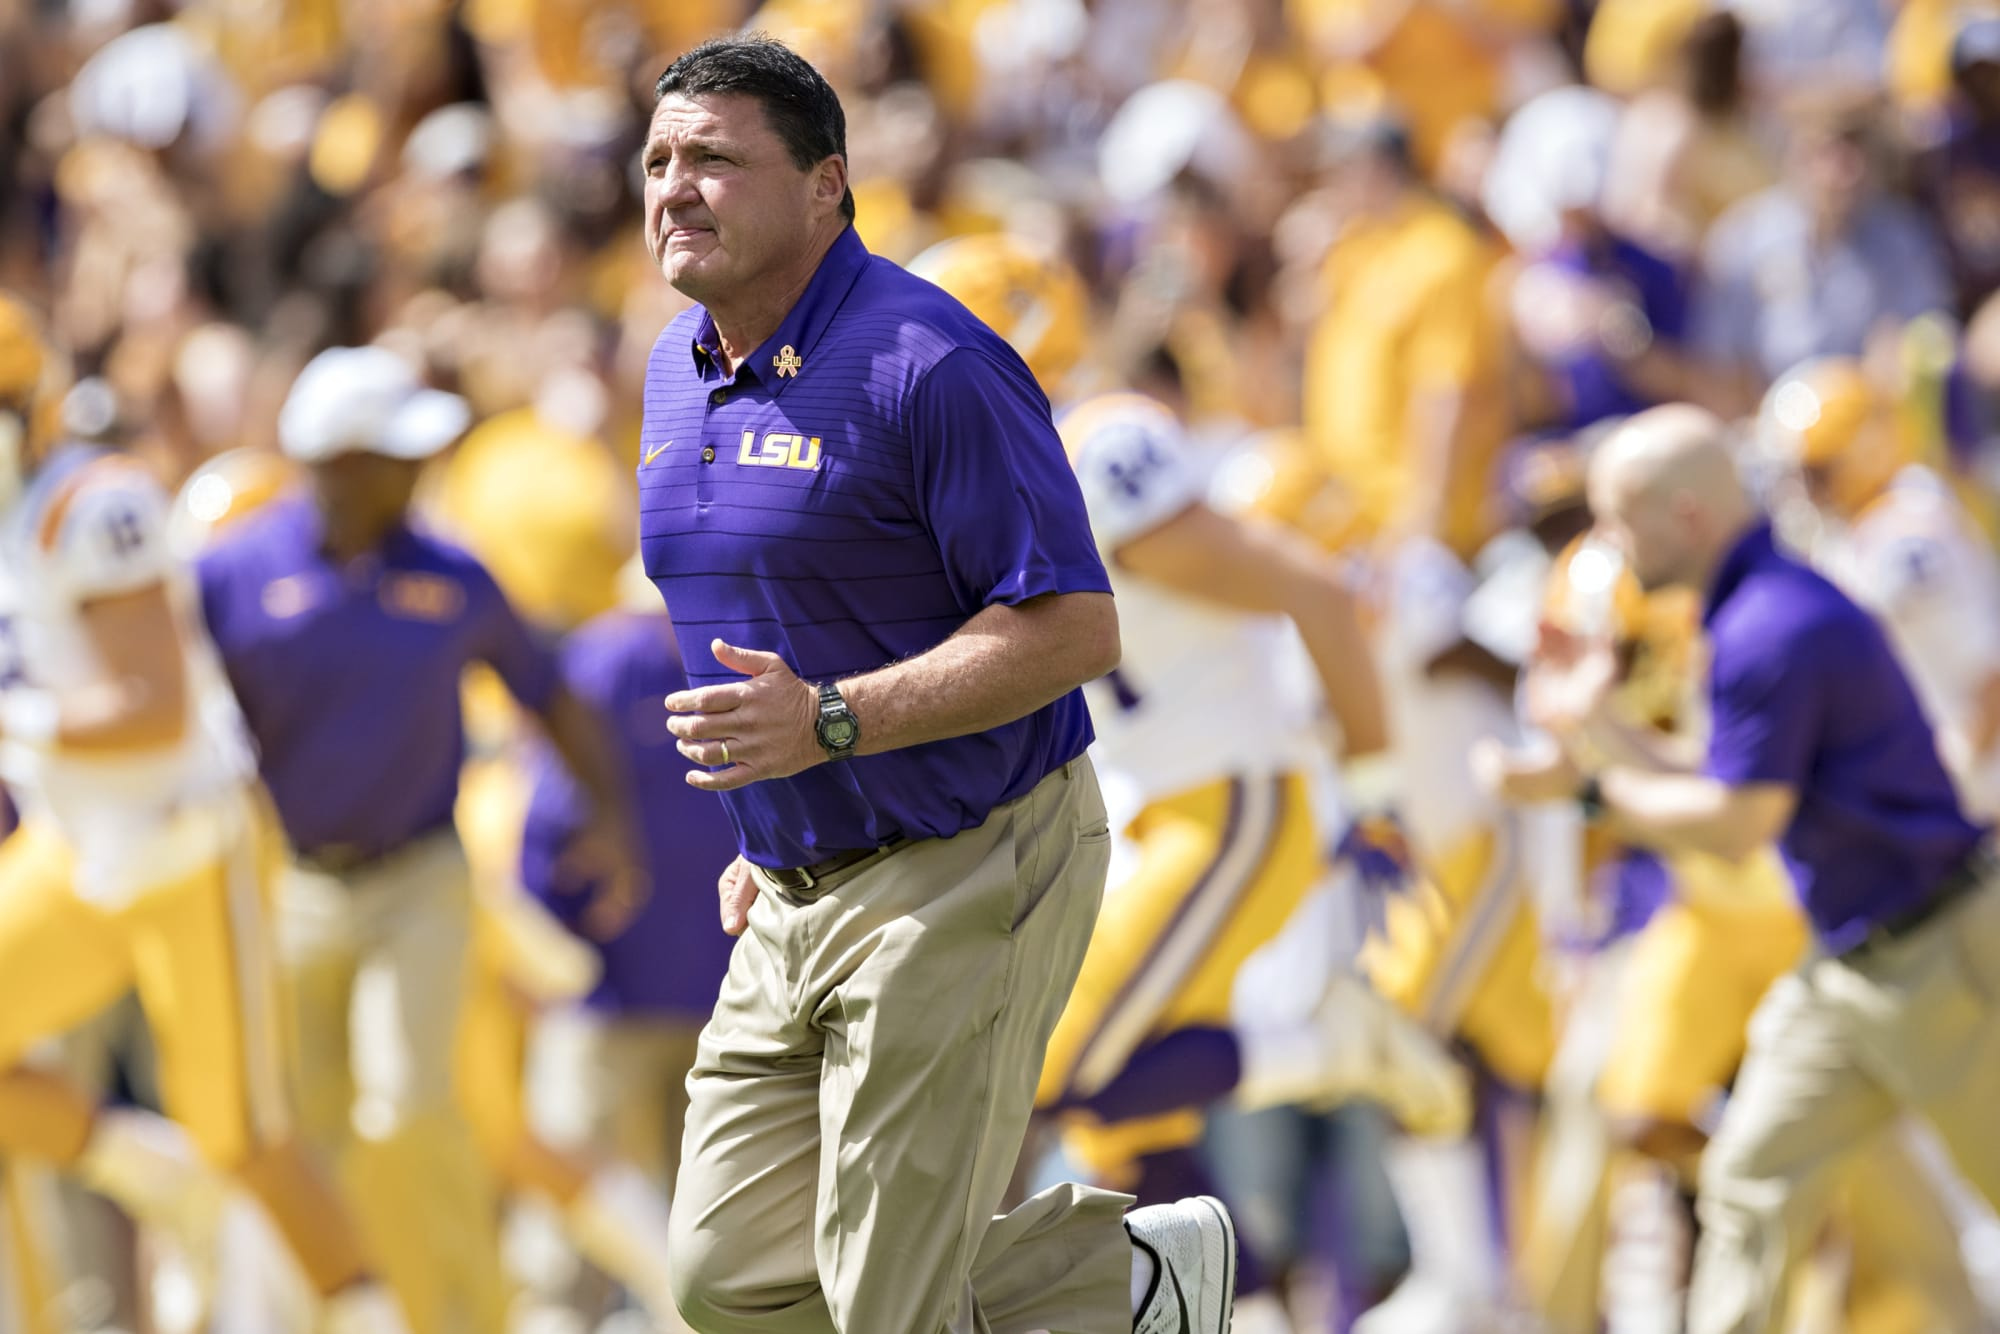 LSU football isn't cutting costs when it comes to fighting COVID-19